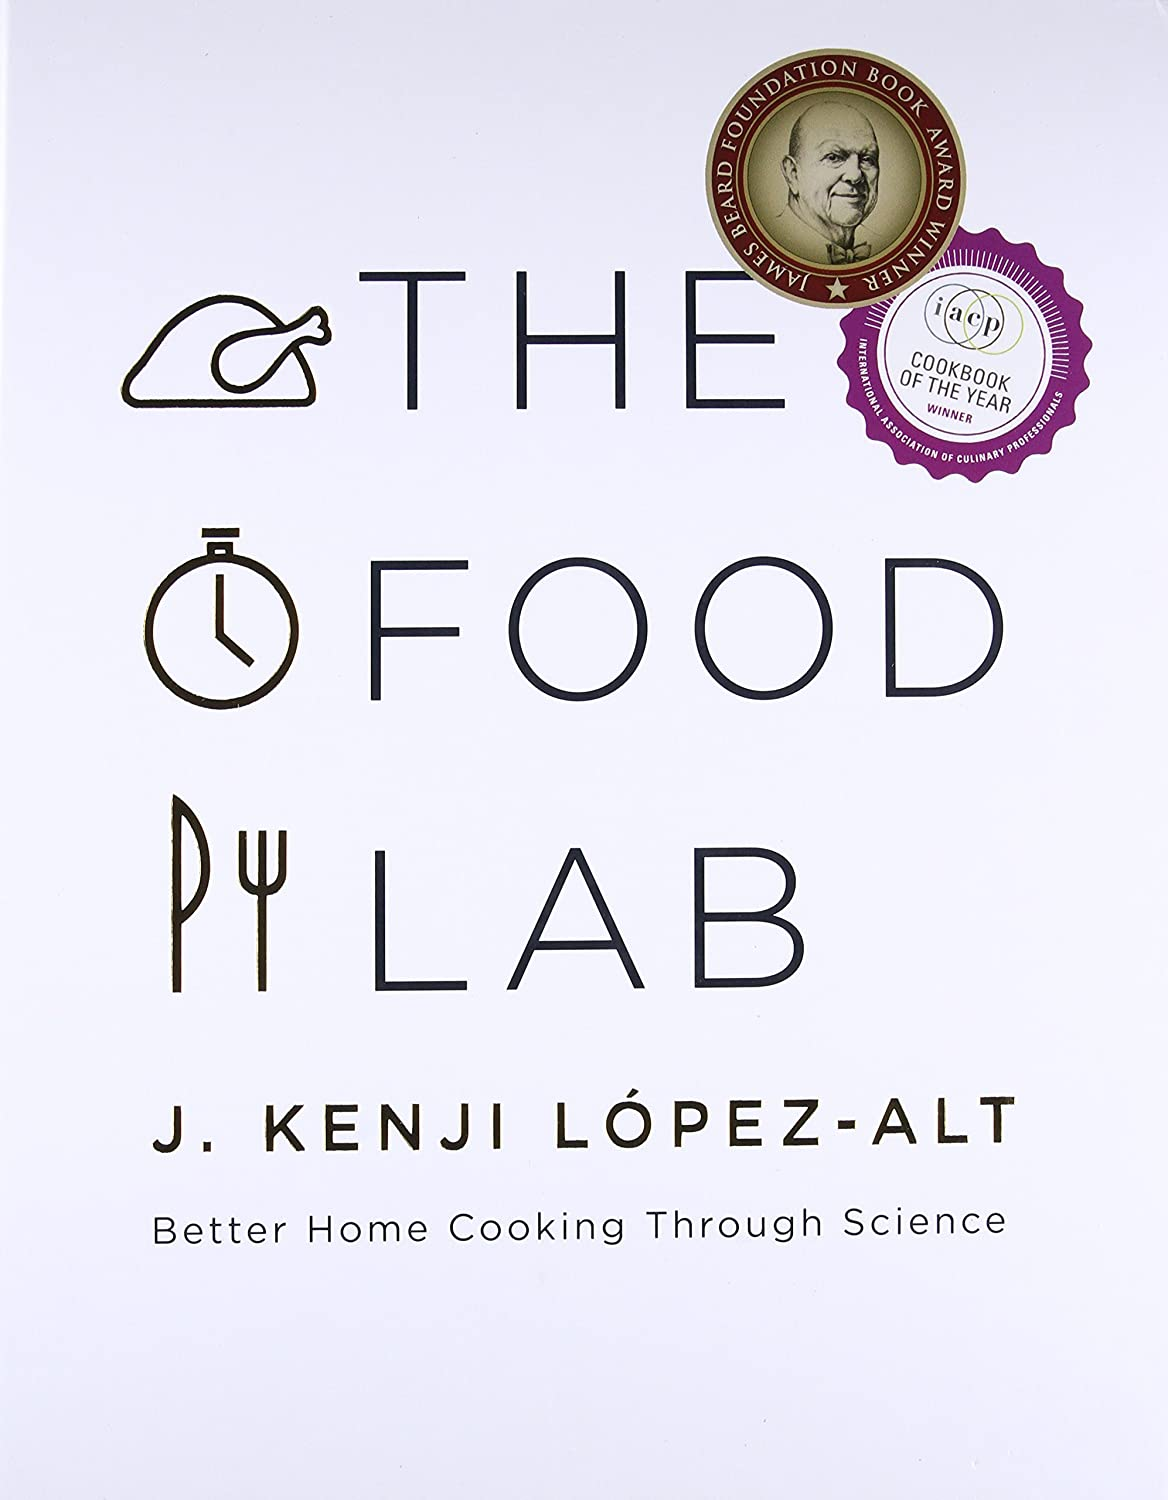 Amazon.com : [J. Kenji López-Alt] The Food Lab: Better Home Cooking Through Science - Hardcover : Office Products